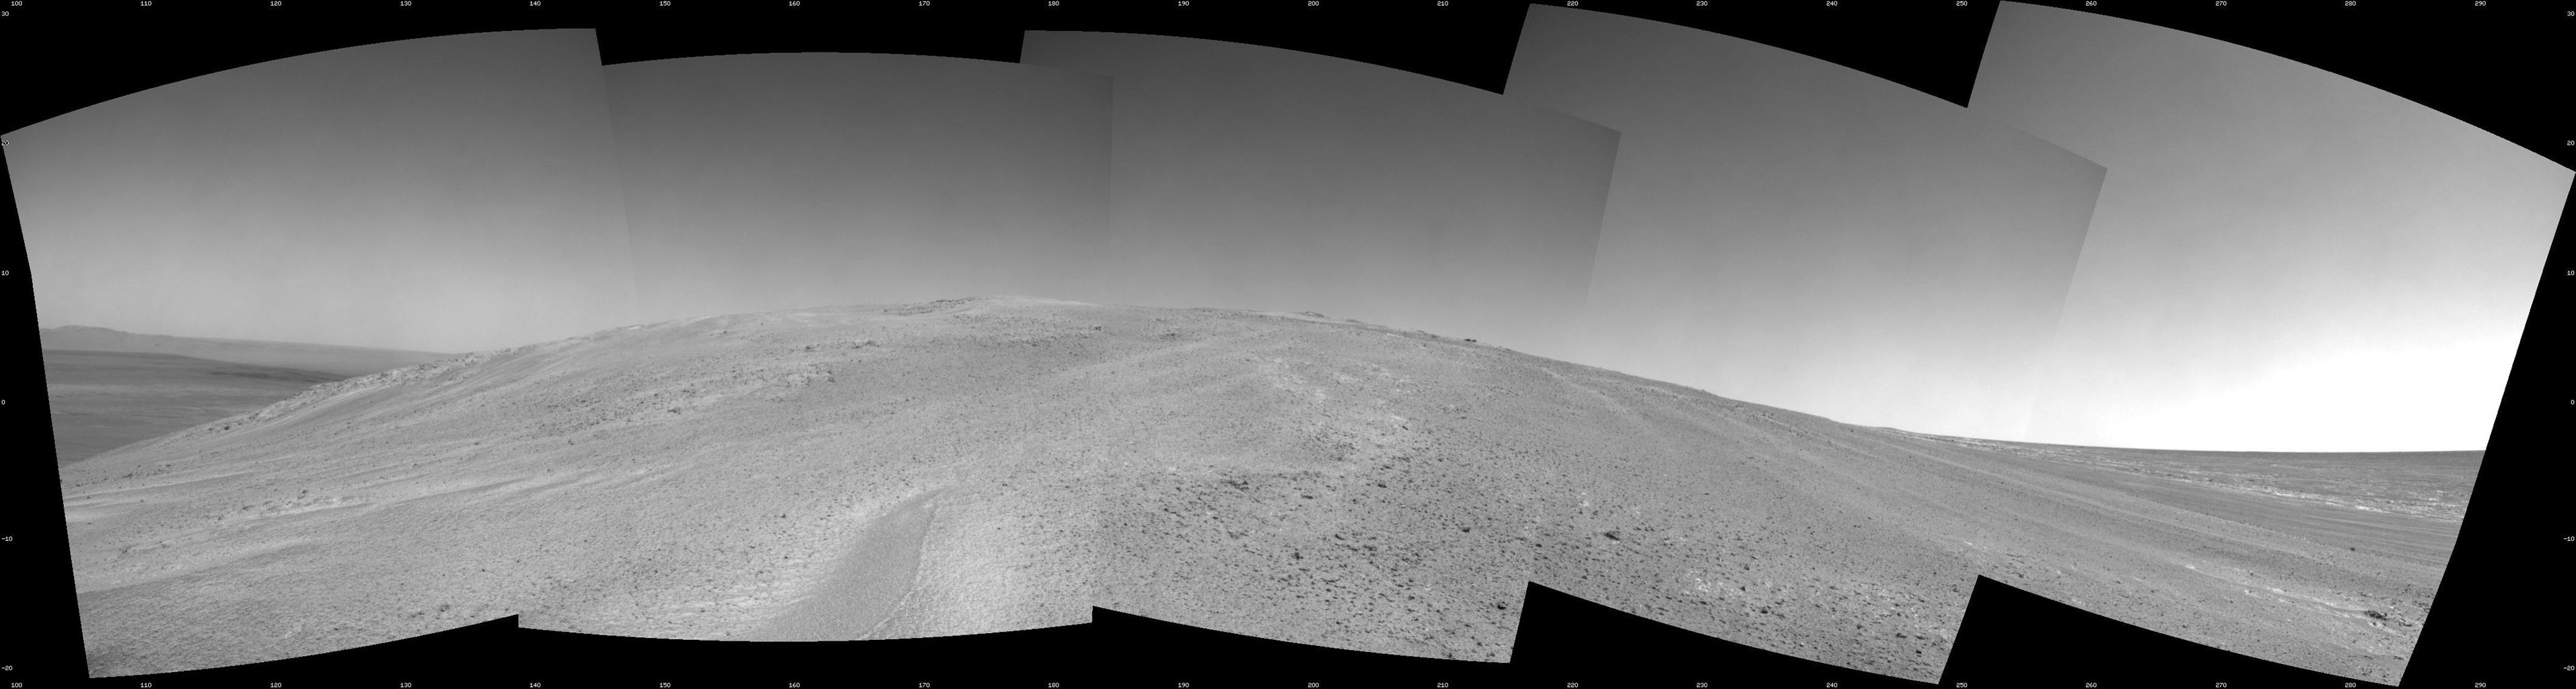 NASA's Mars Exploration Rover Opportunity captured this southward uphill view after beginning to ascend the northwestern slope of 'Solander Point' on the western rim of Endeavour Crater.